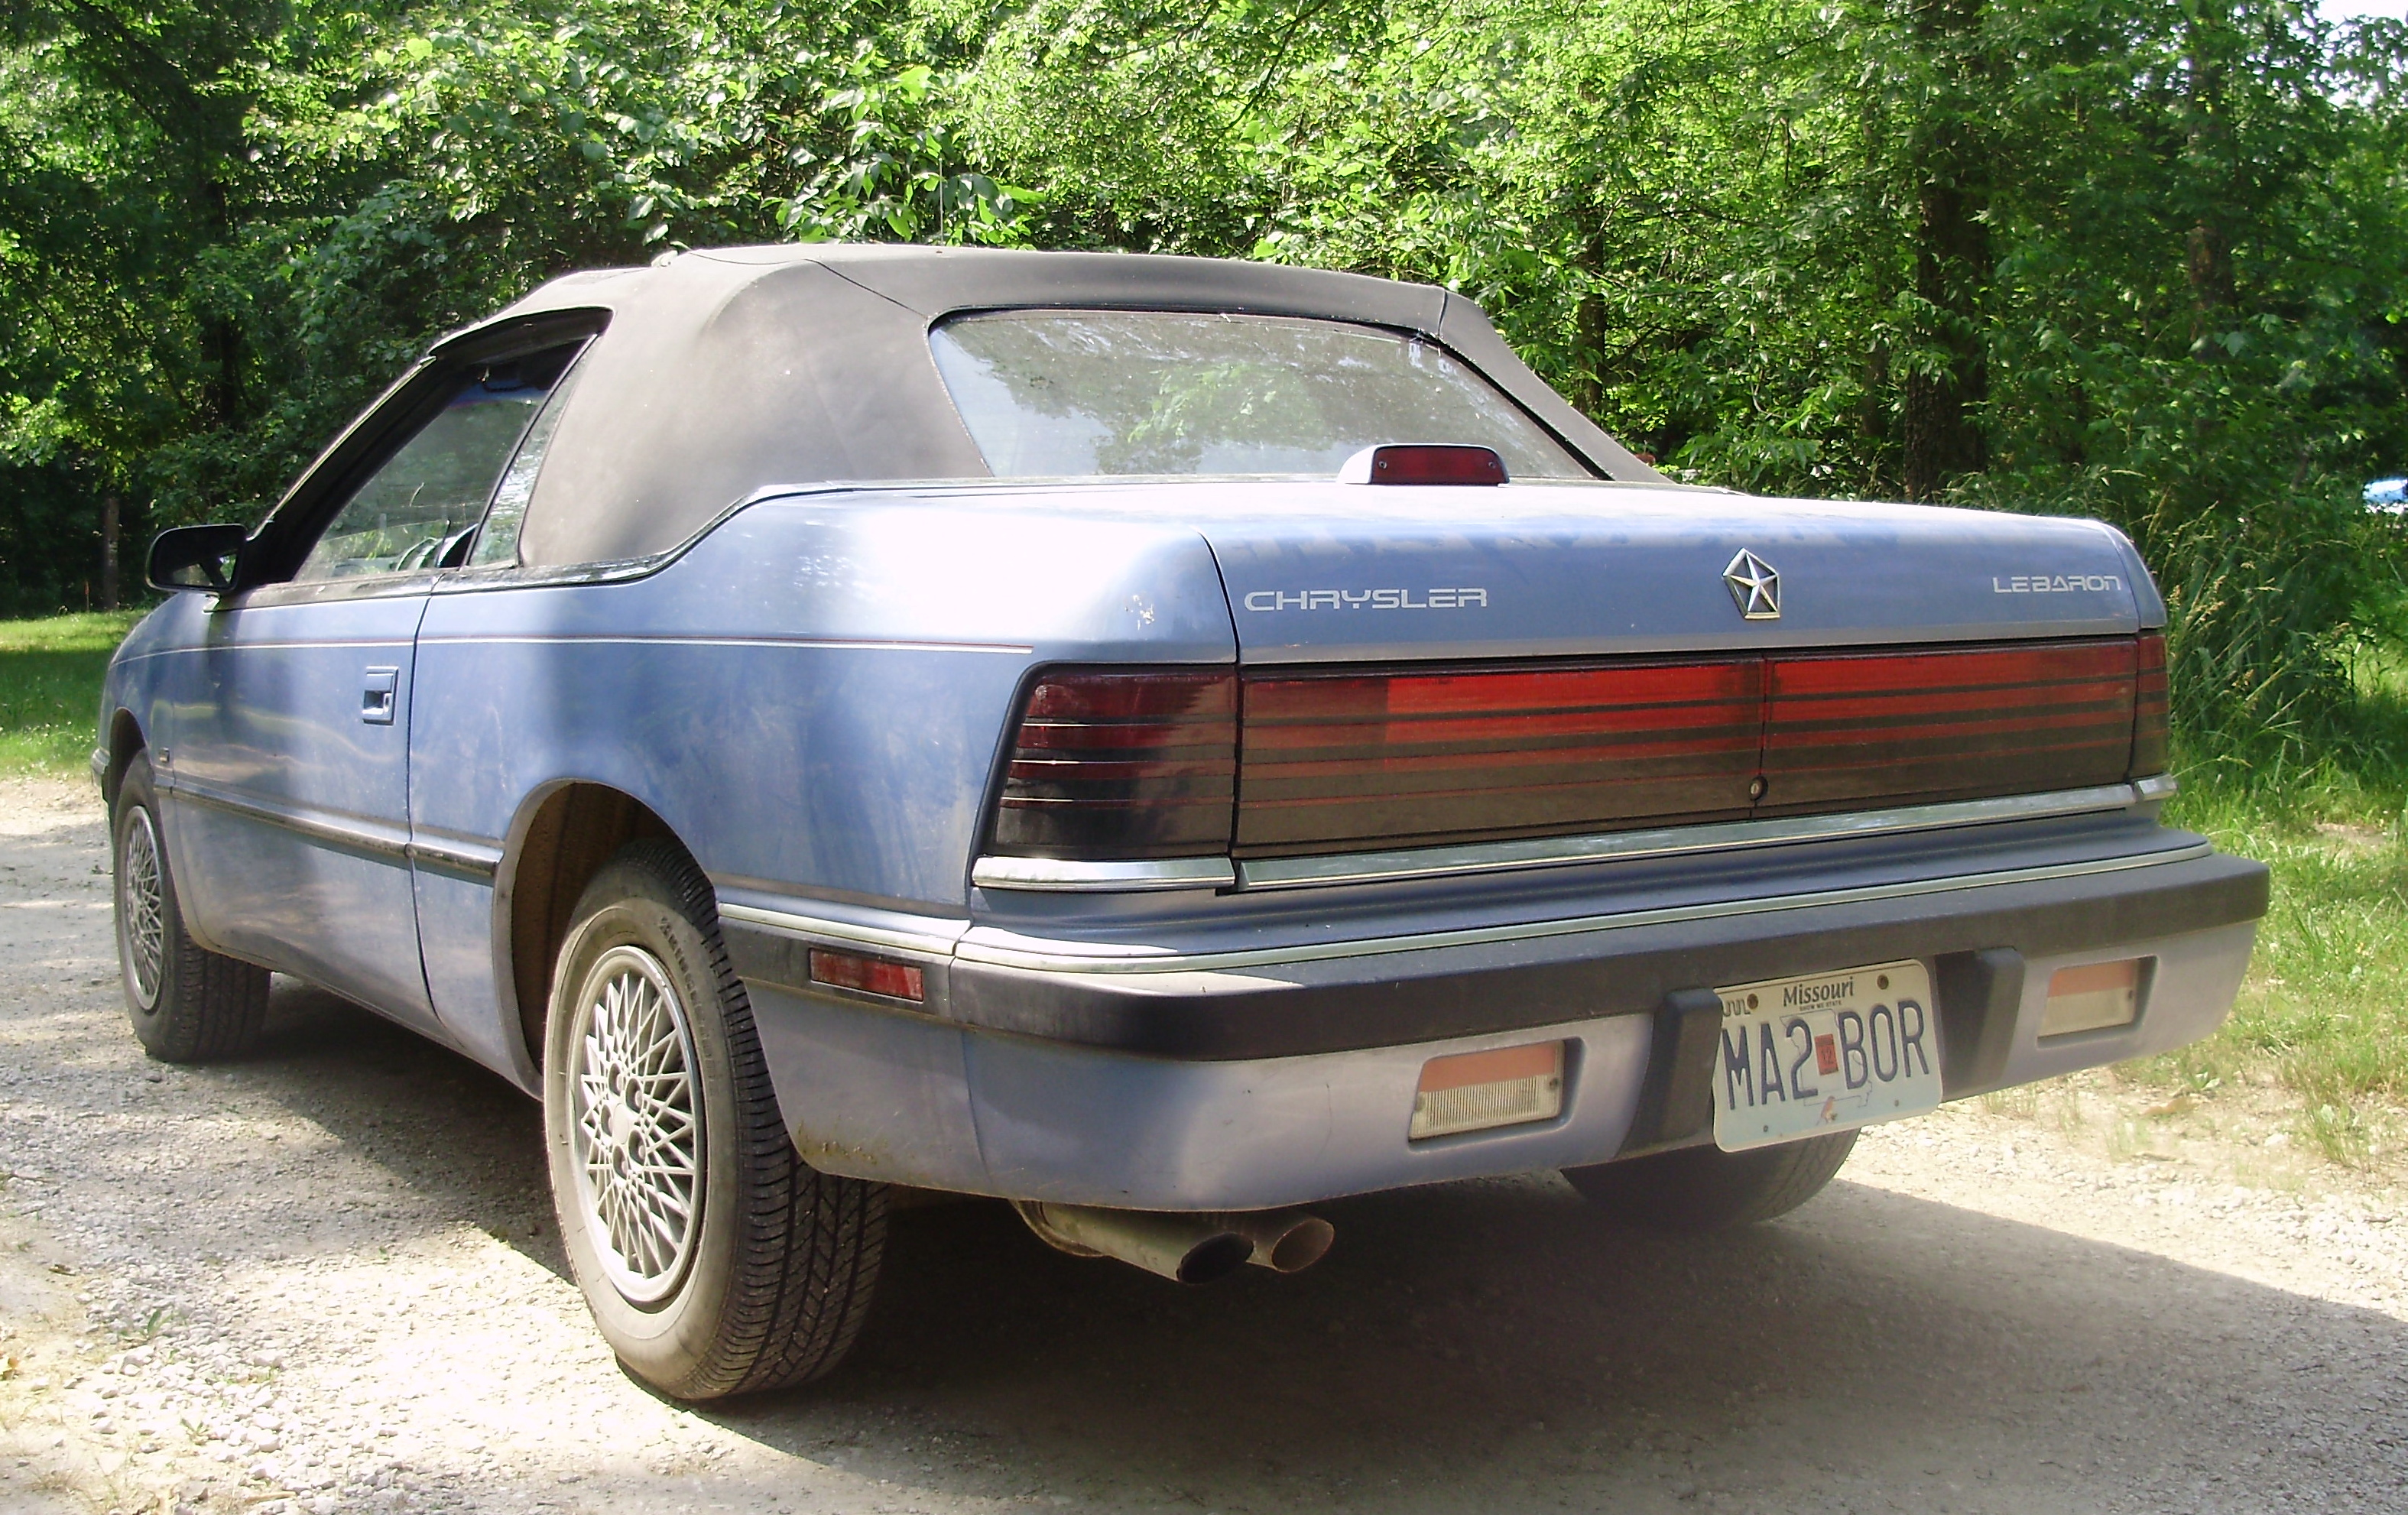 curbside classic 1992 chrysler lebaron convertible take your top  despite some quirks, this lebaron is a hoot to drive and it is capable of more than what one might first think in addition to this chrysler, its owner also